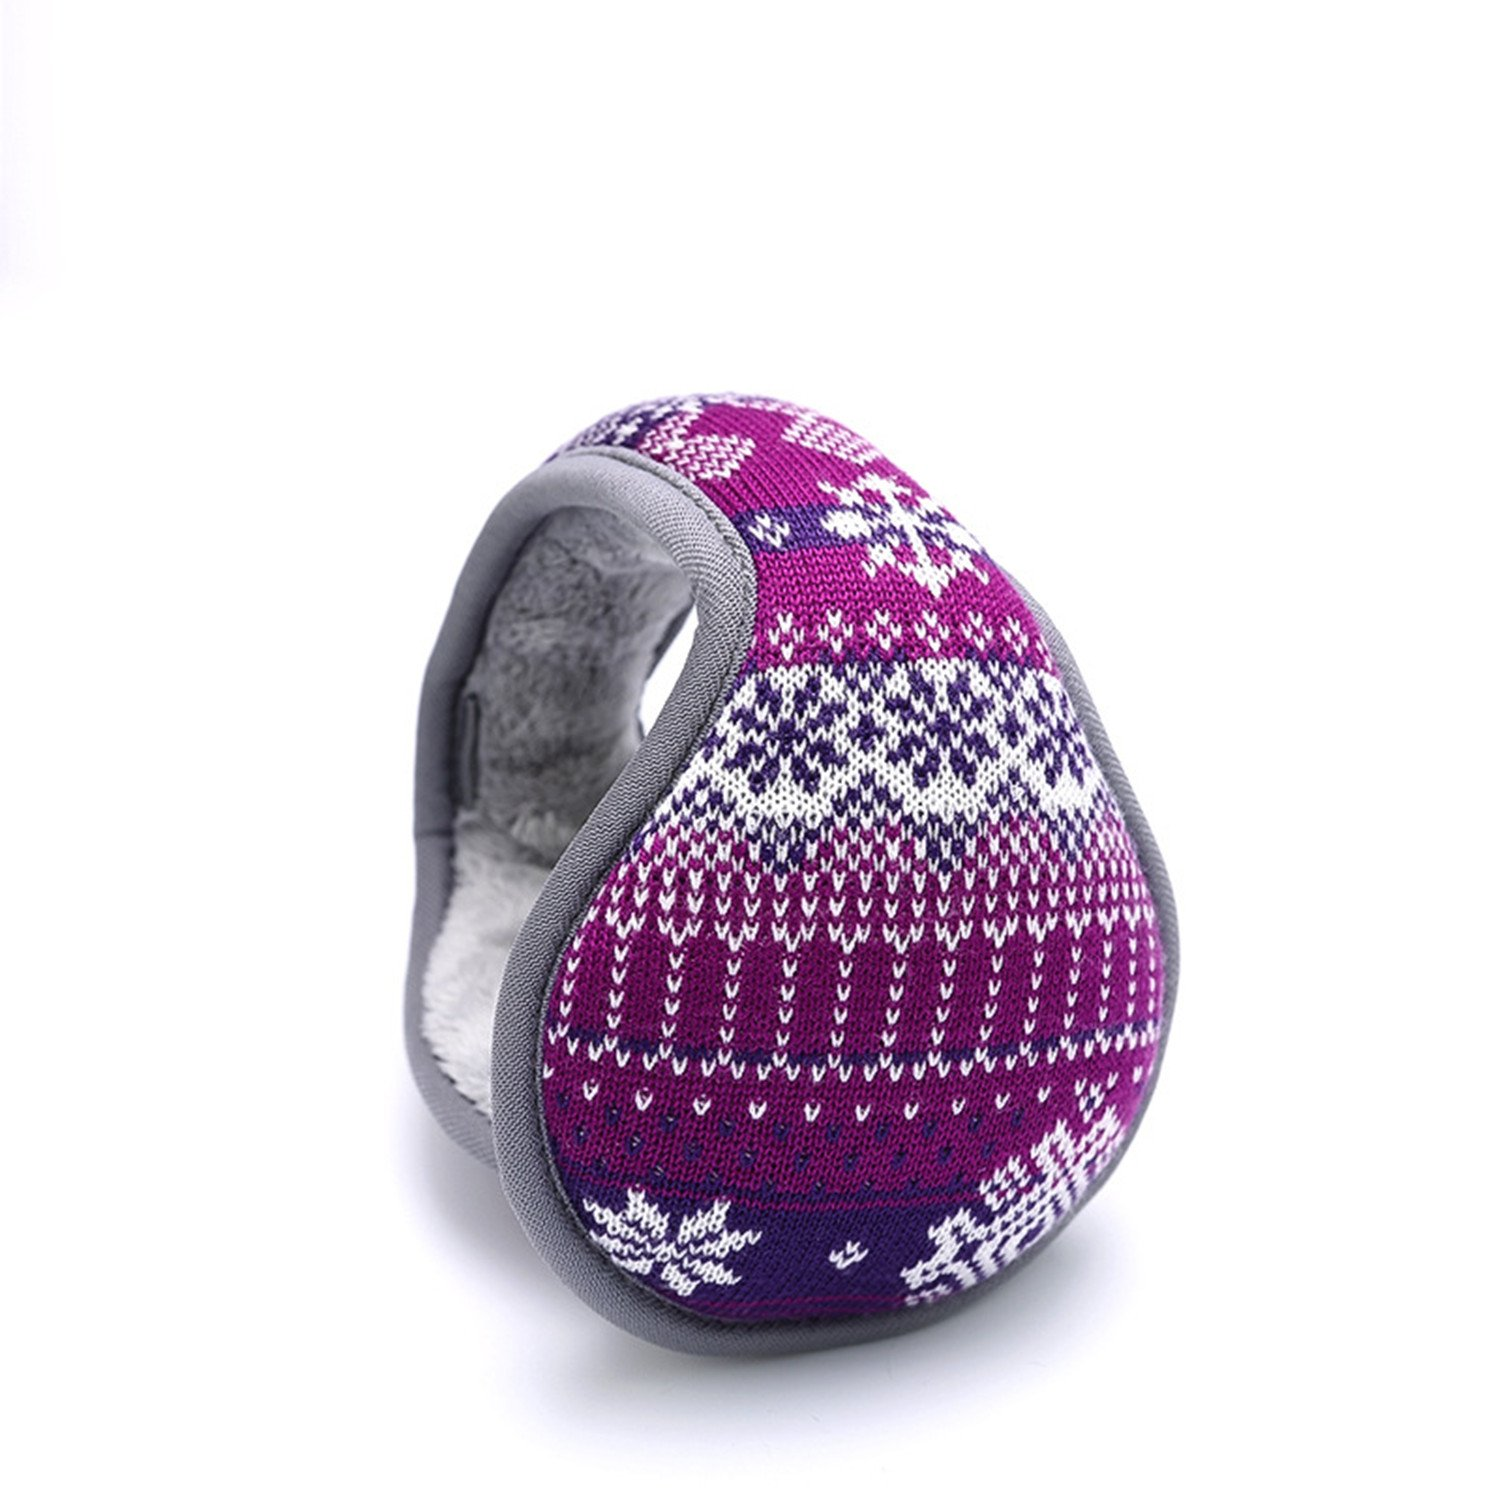 Outdoor Exposure and Thicken Earmuffs Ear Cover Unisex Foldable Ear Warmers Polar Fleece Winter EarMuffs Color Purple